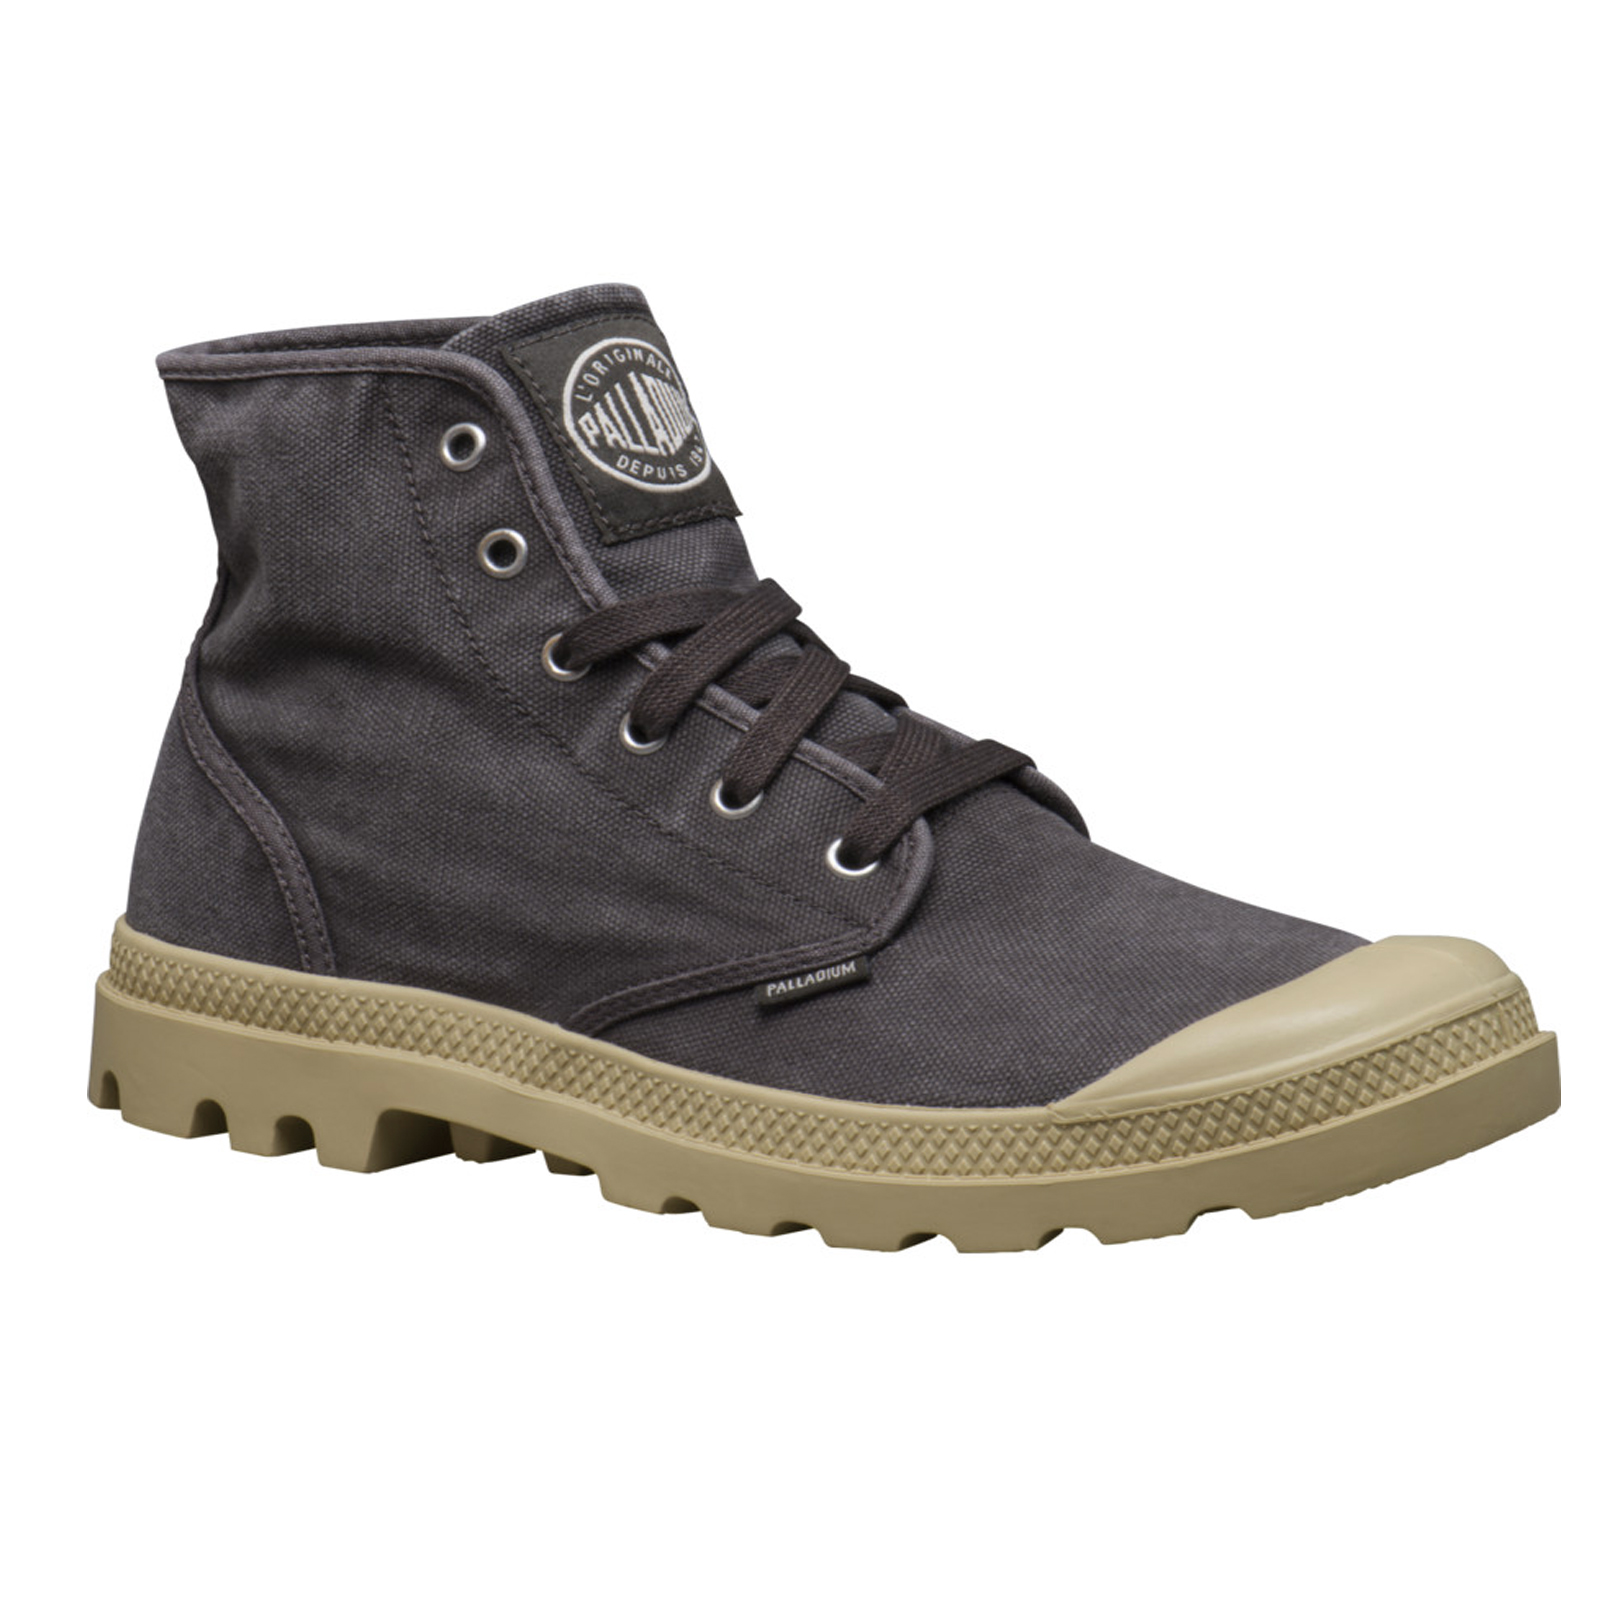 Canvas boots - Compare Prices & Store Ratings at shopnow-jl6vb8f5.gae Selection· Big Deals· Comparison Shopping· Top Brands.